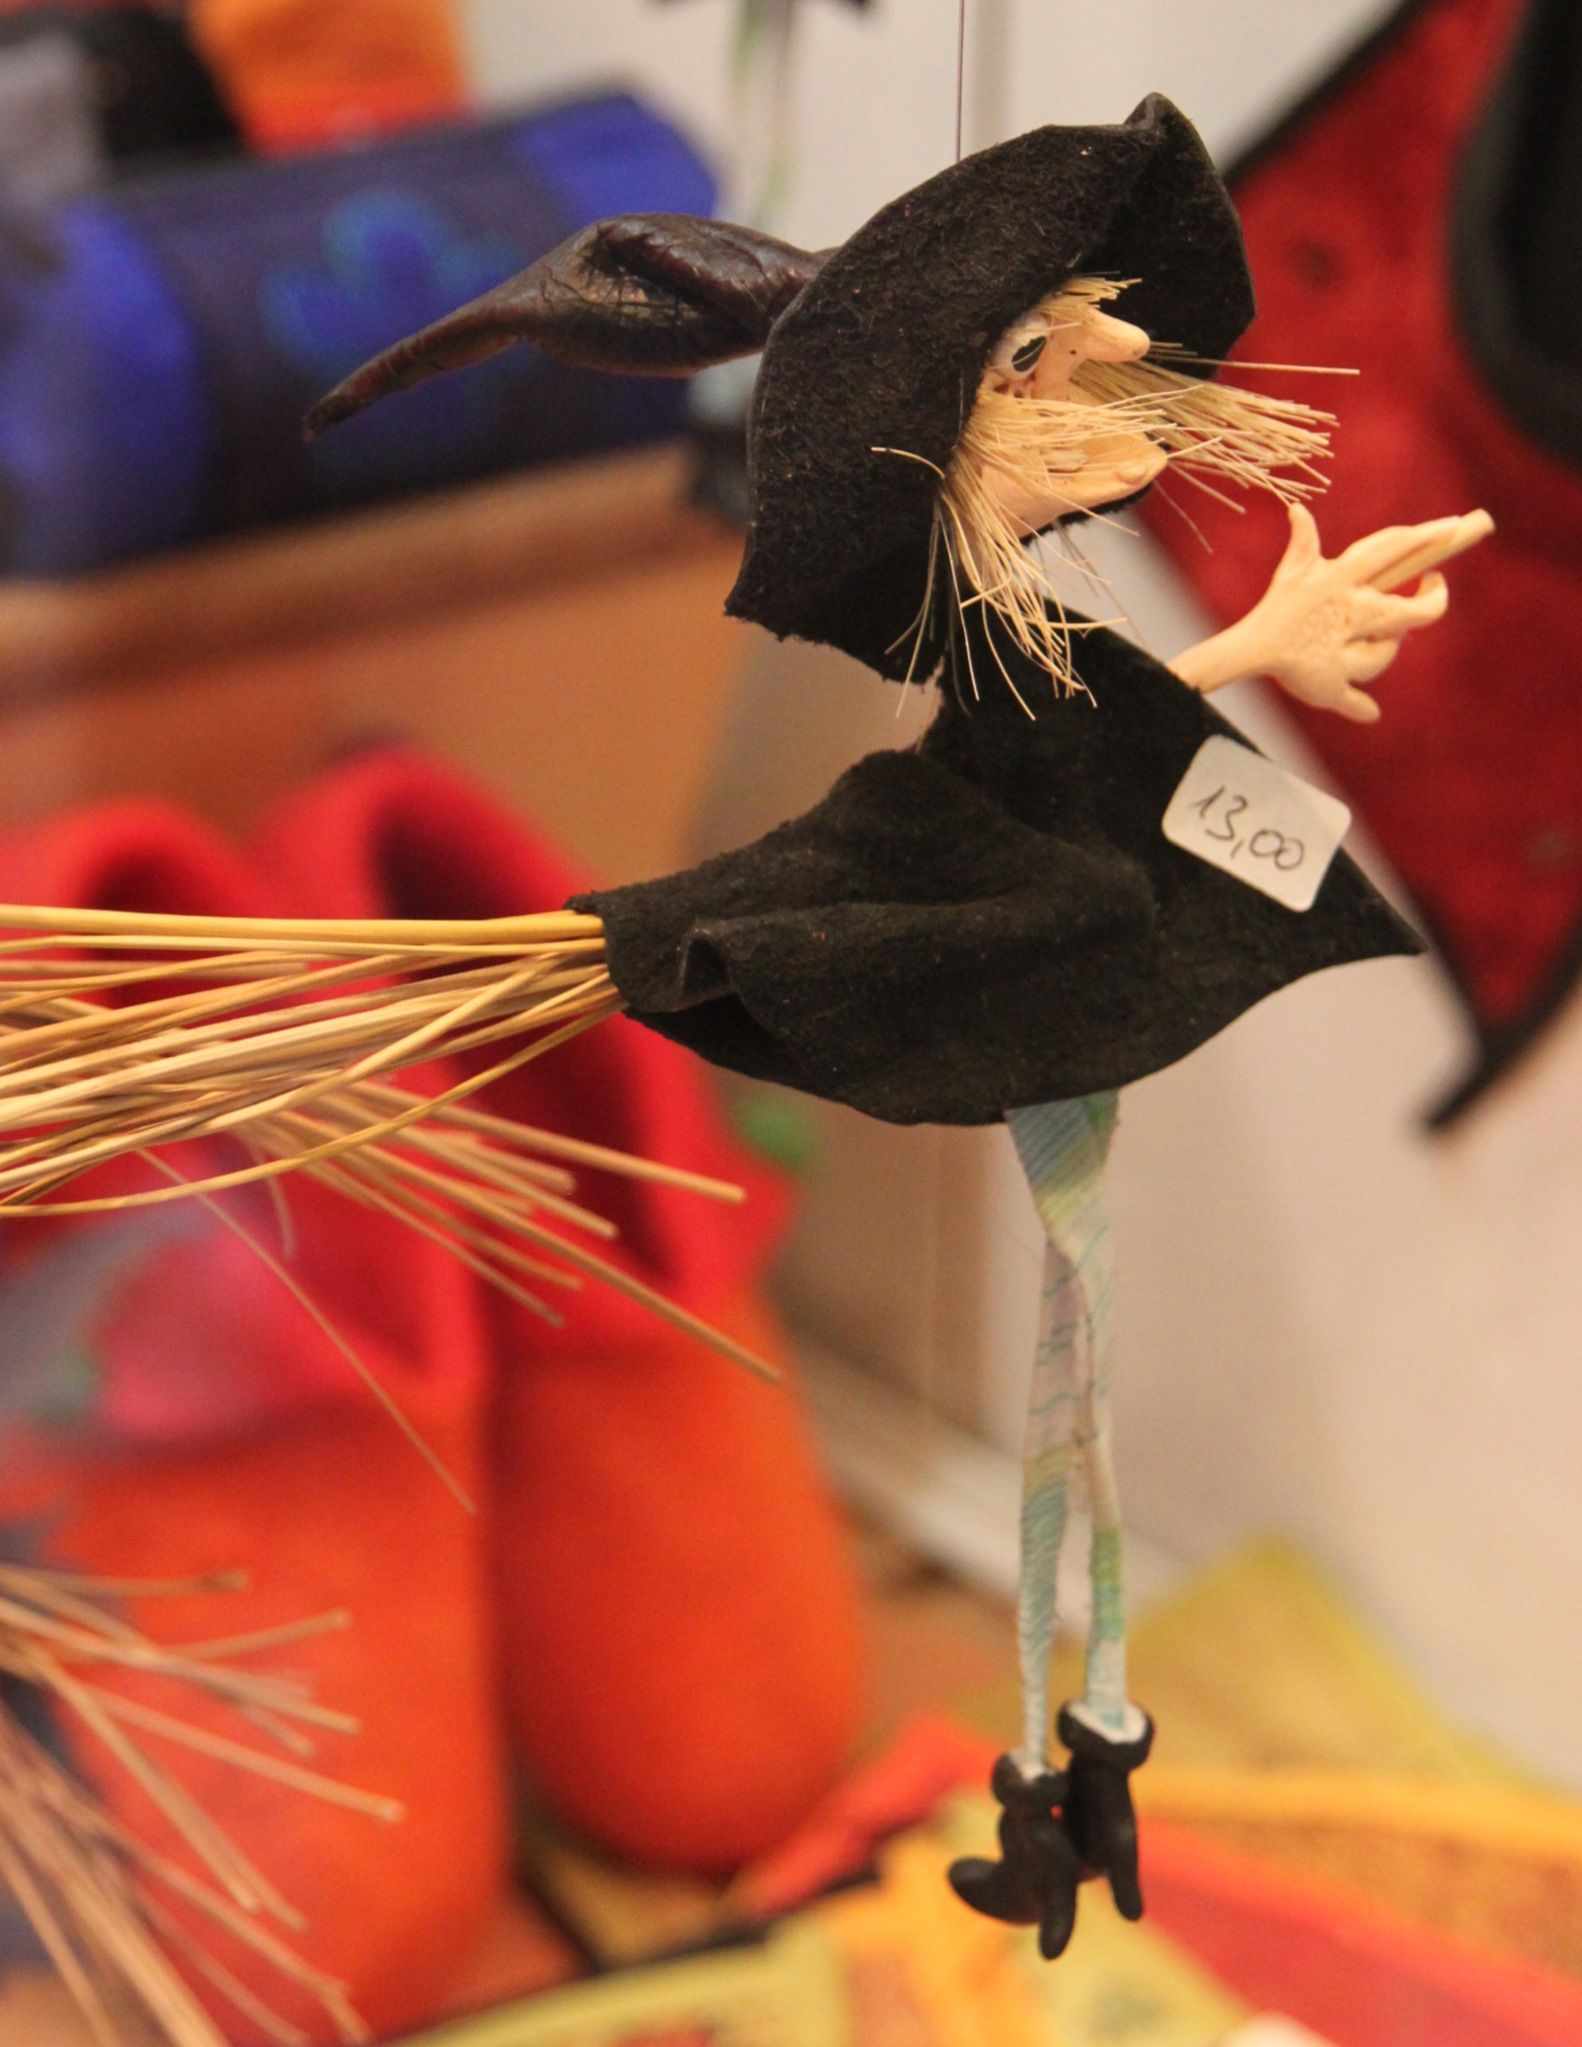 La Befana flies in on her broomstick!